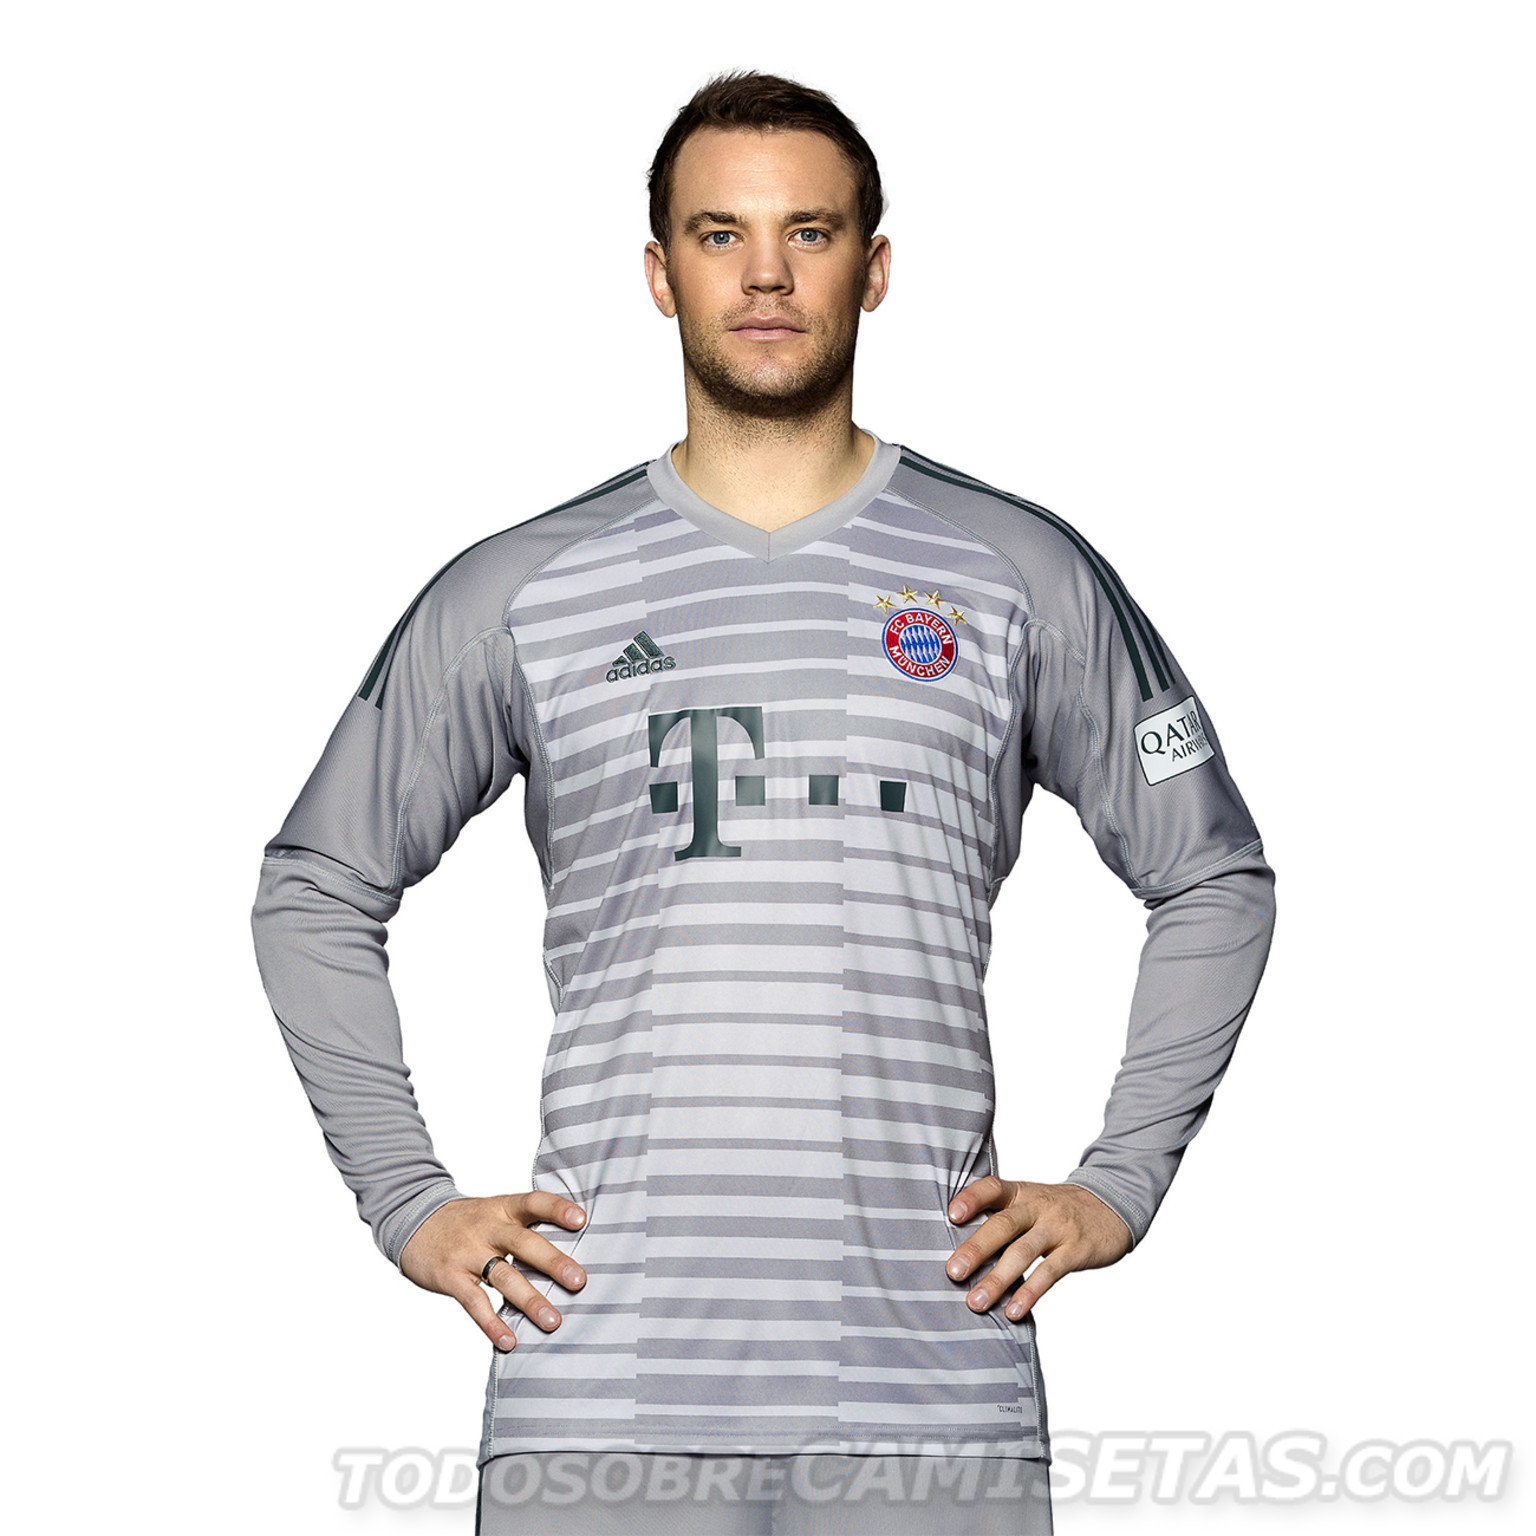 Bayern-Munich-2018-19-adidas-new-GK-home-kit-2.jpg